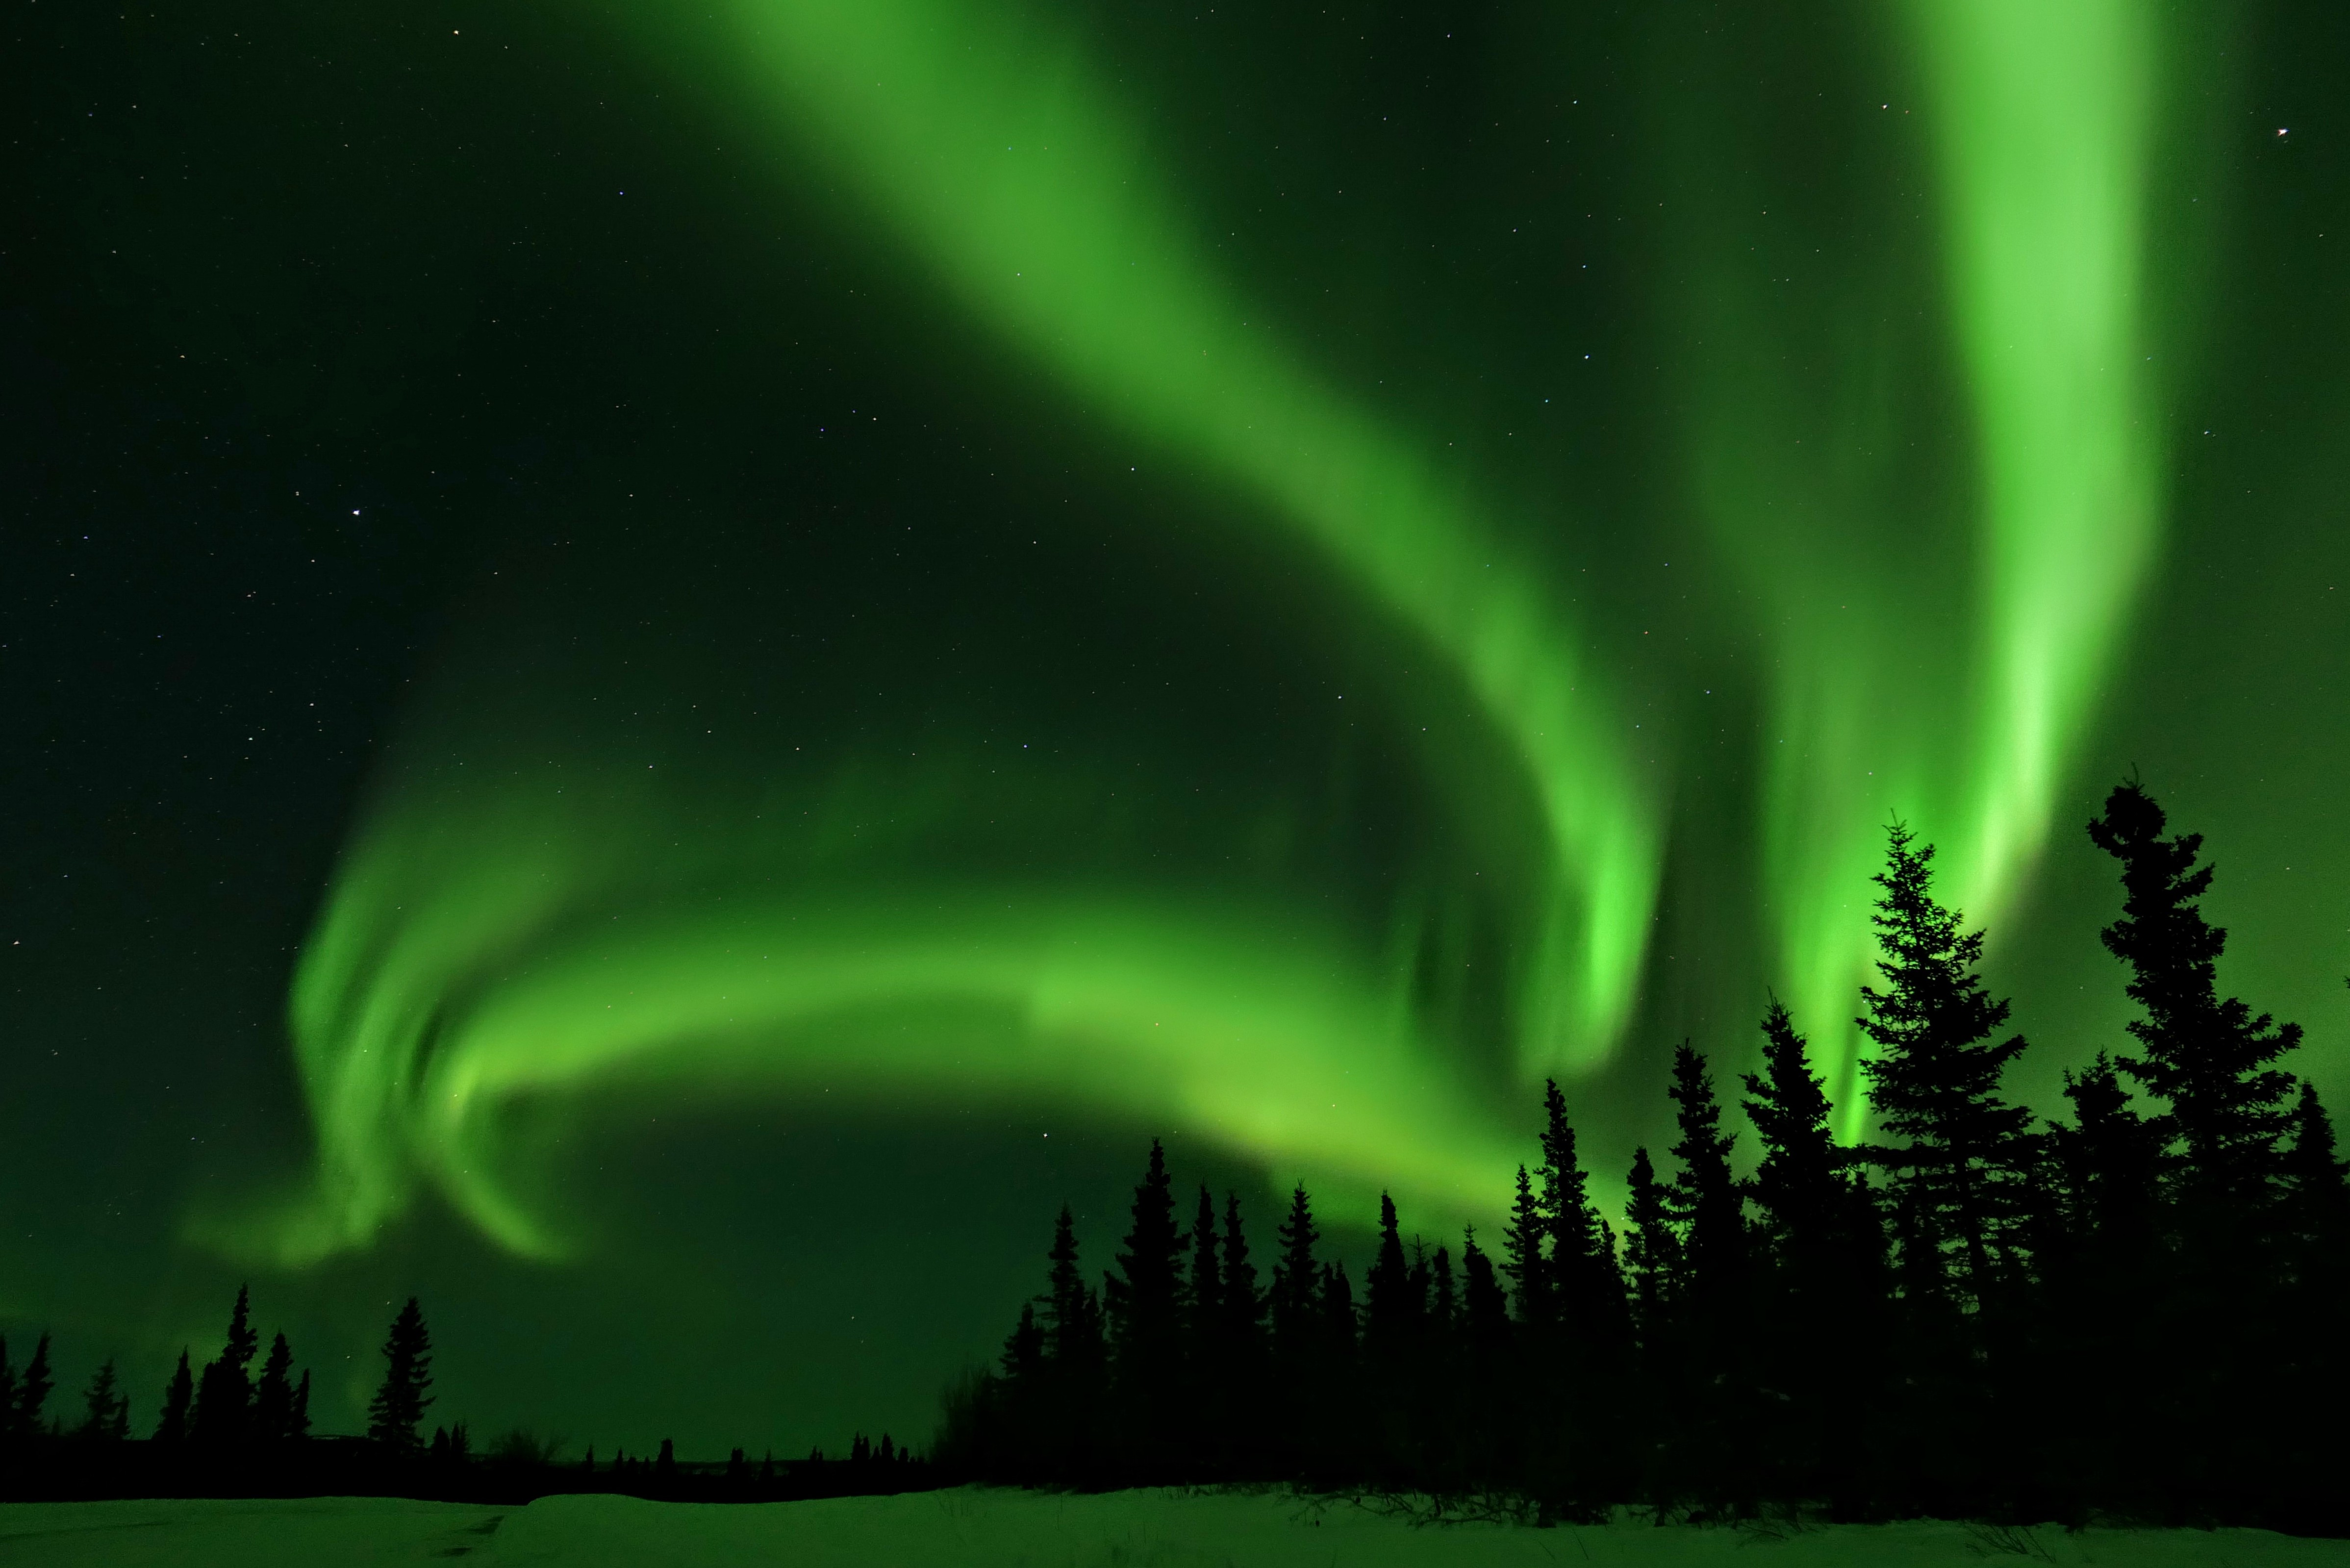 How to quickly & easily set up your camera for great Northern Lights photos